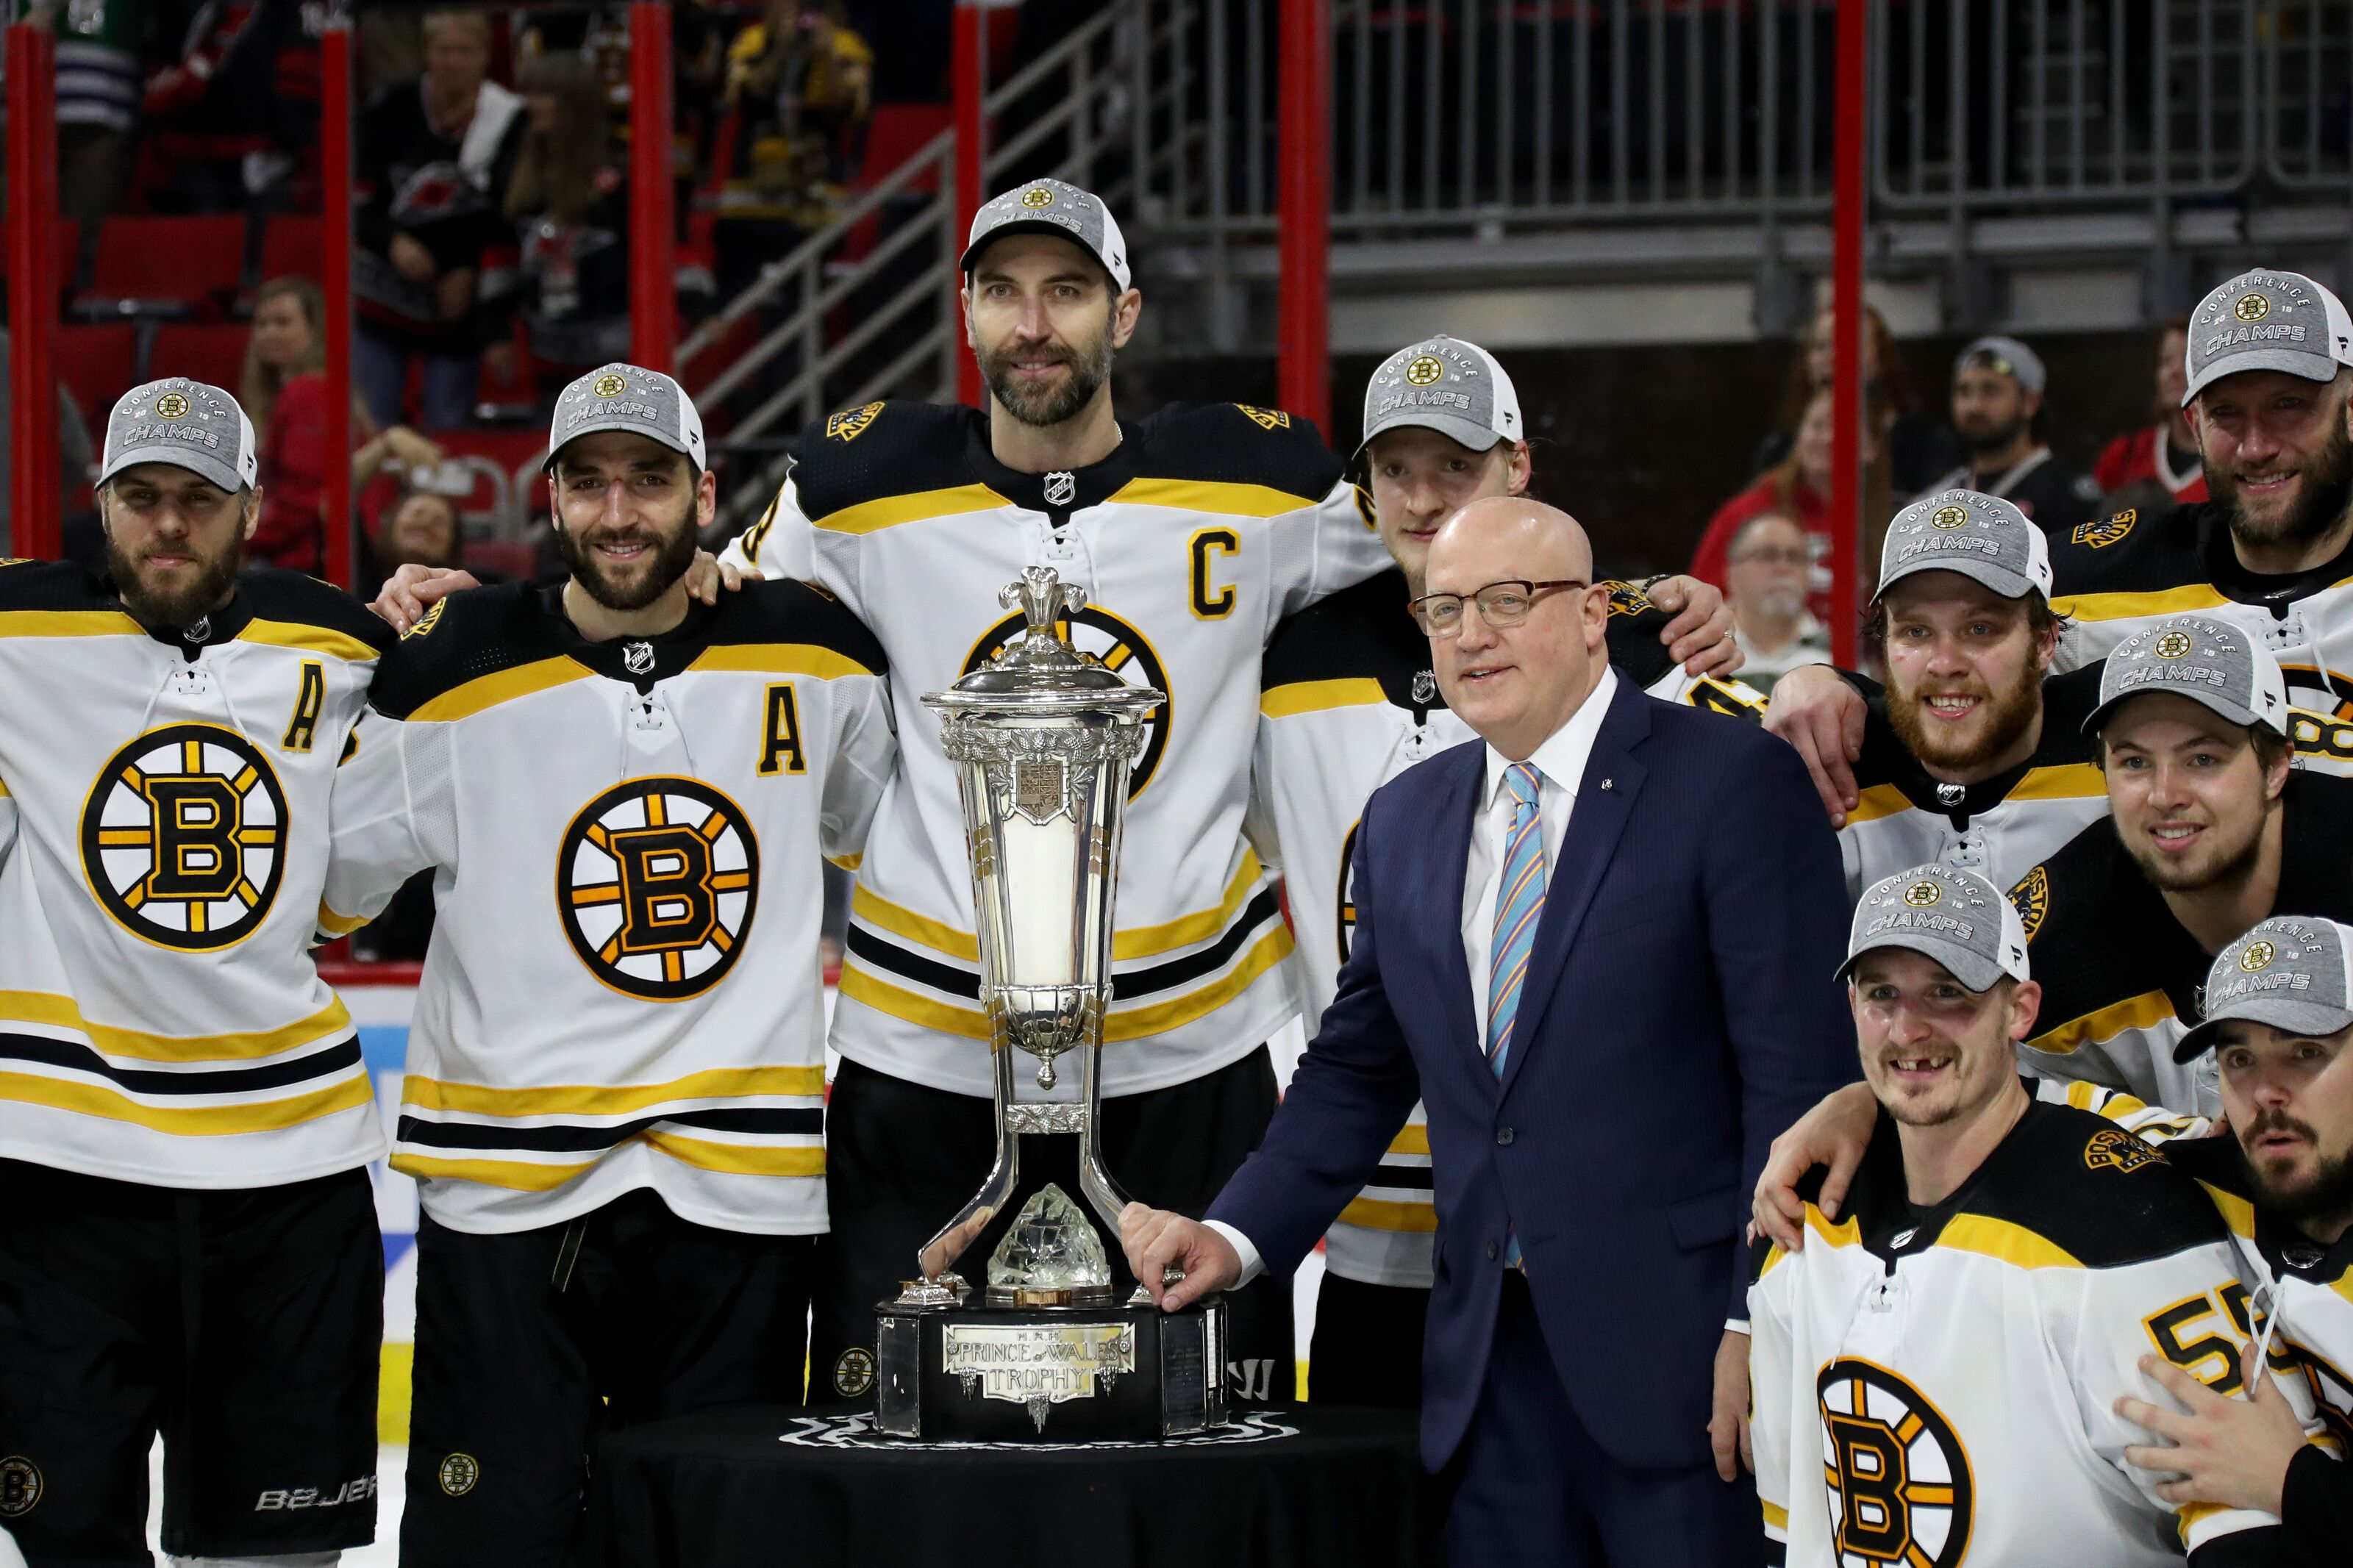 Boston Bruins: 3 takeaways from Eastern Conference Finals sweep